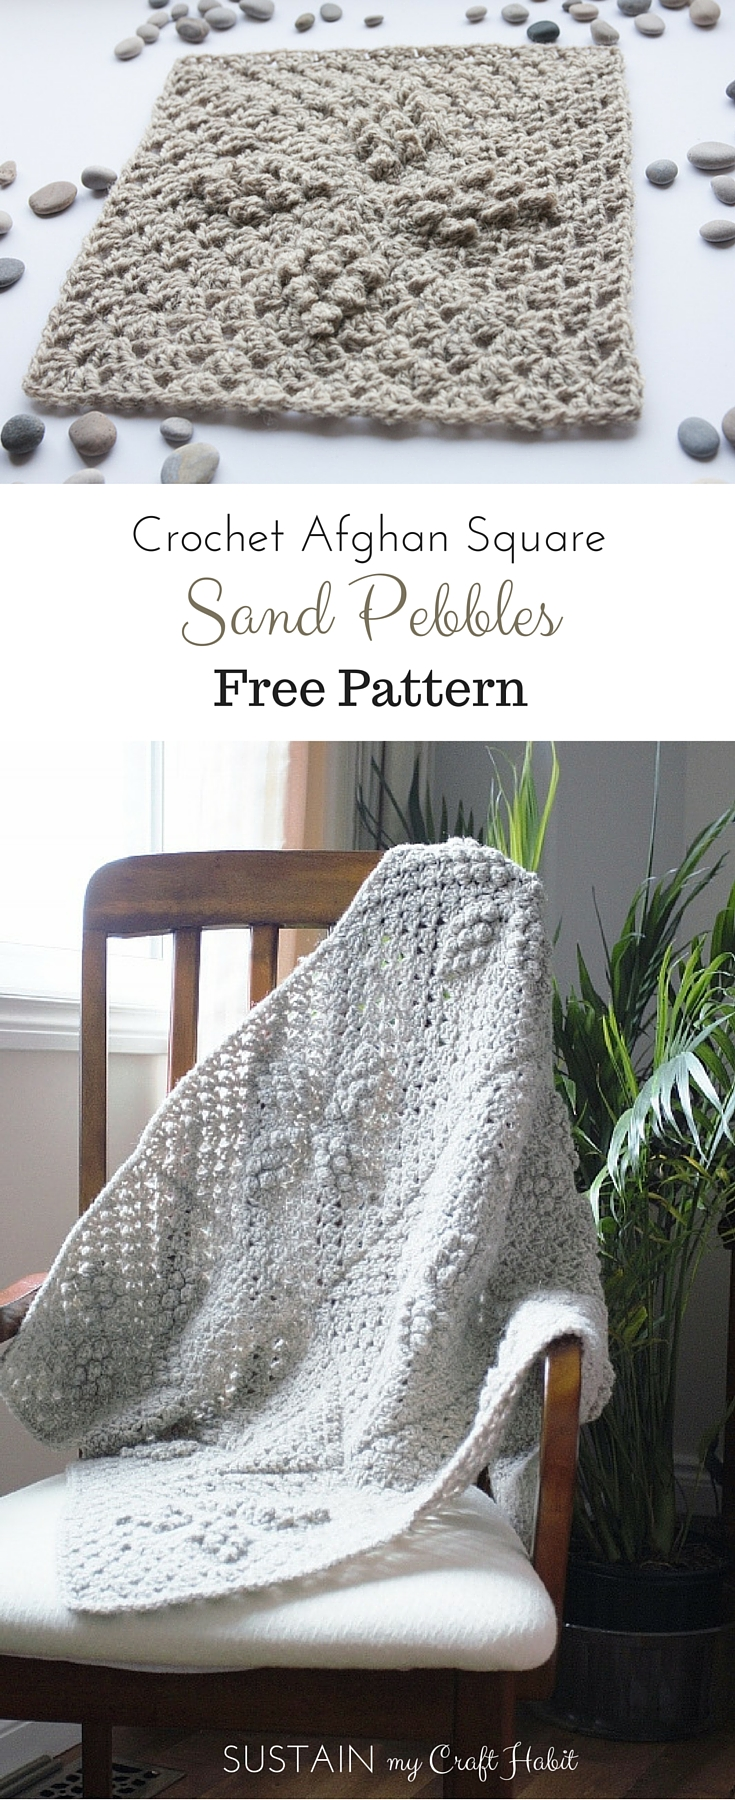 Free crochet afghan patterns. Create your own beautiful beach inspired crochet afghan using 100% Canadian wool with this fabulous and free crochet pattern.